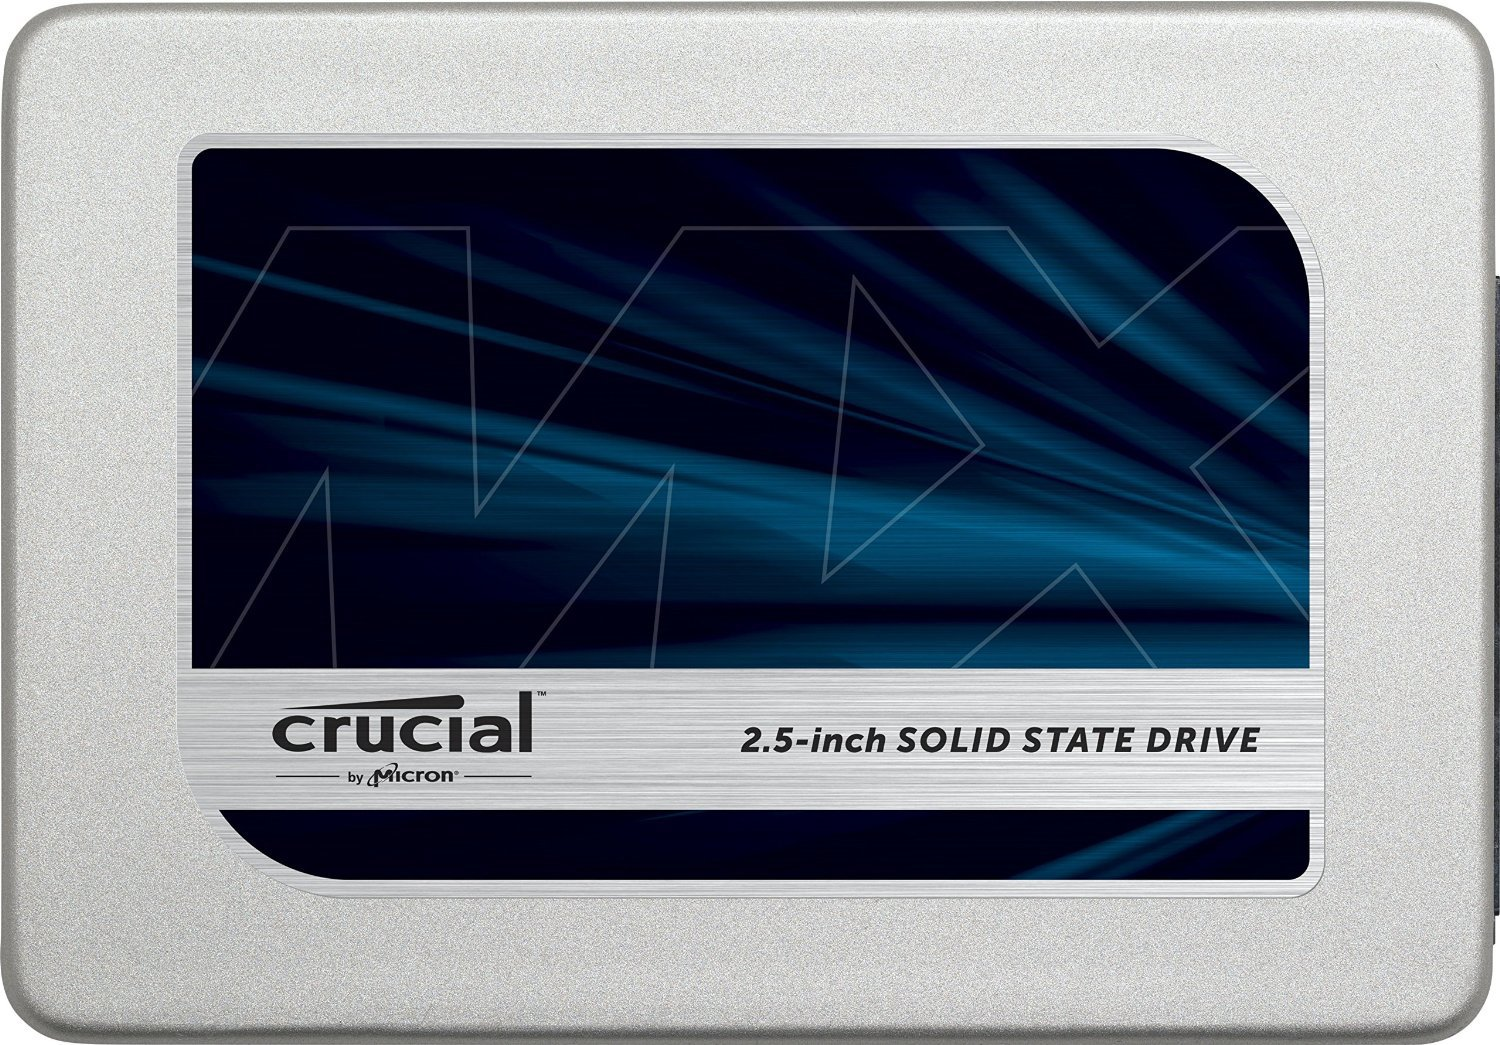 hd-ssd-cricial-750gb